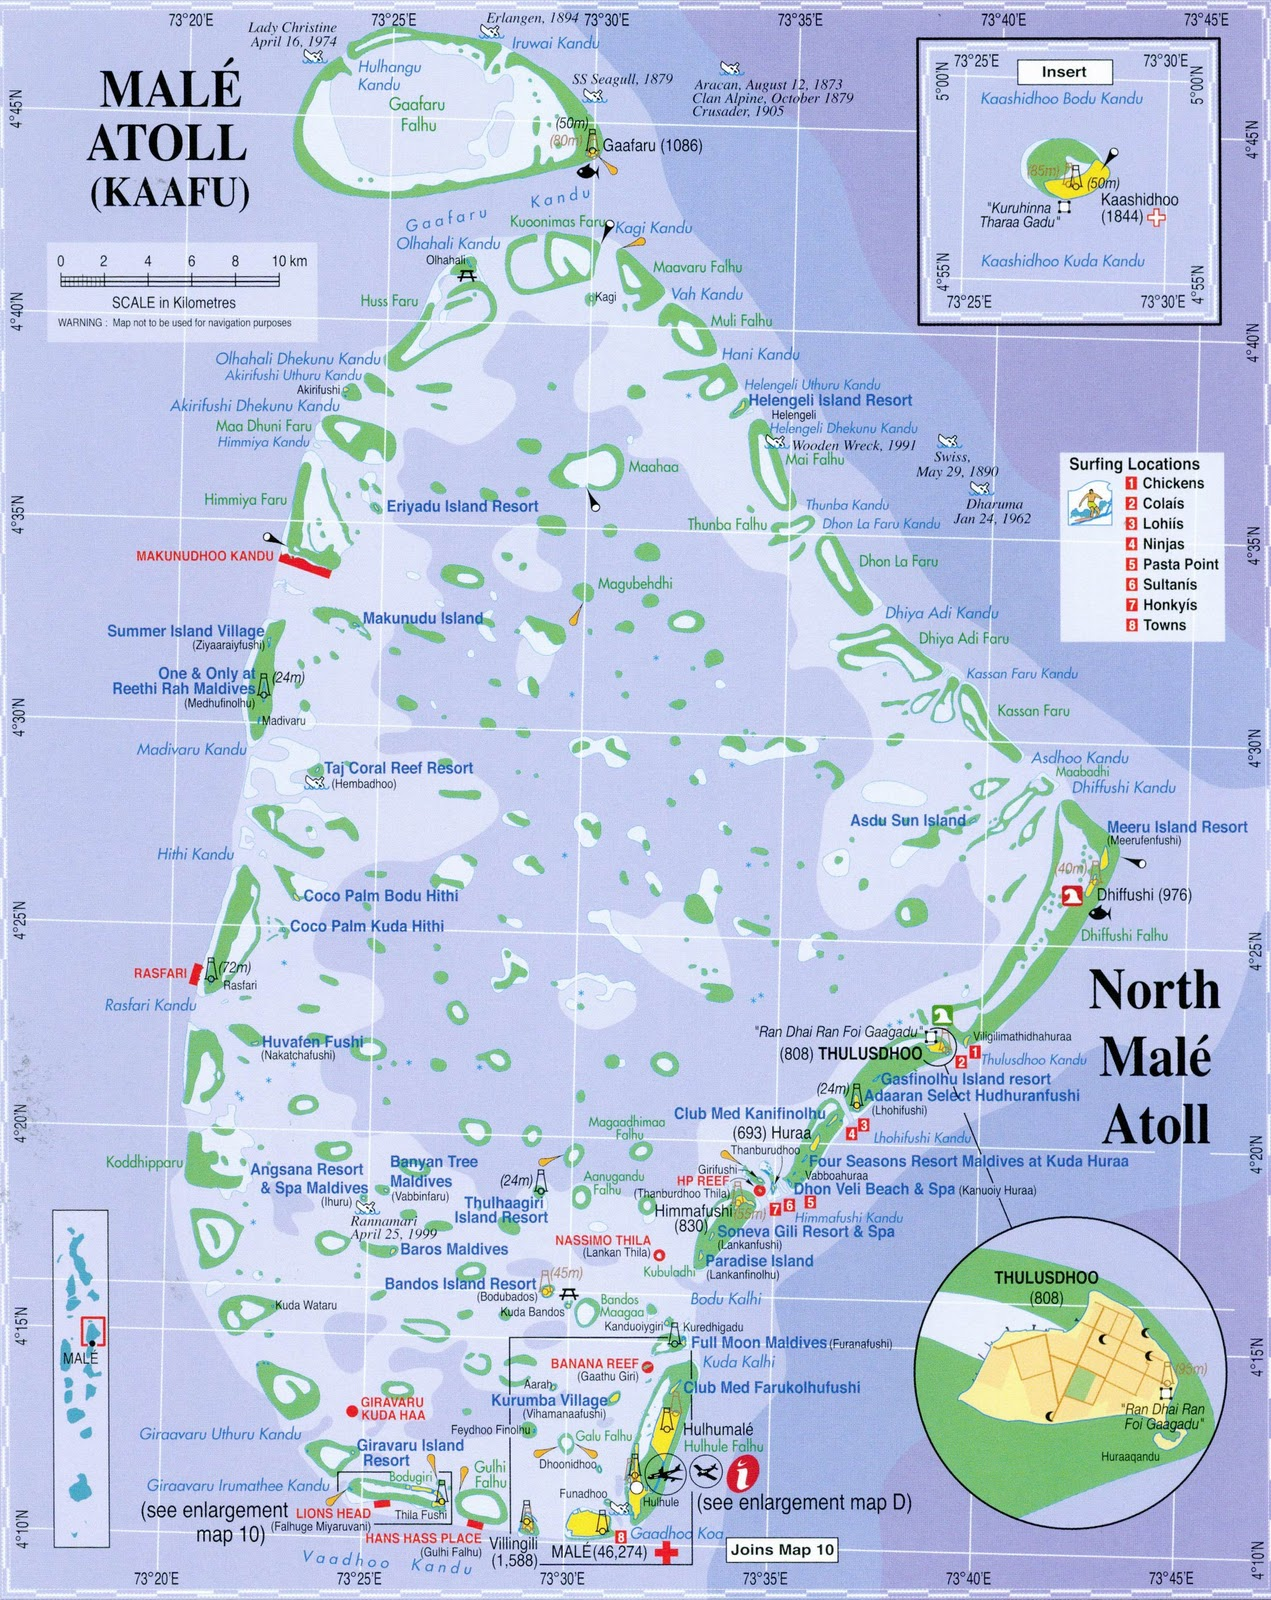 North Male Atoll (Kaafu) Map